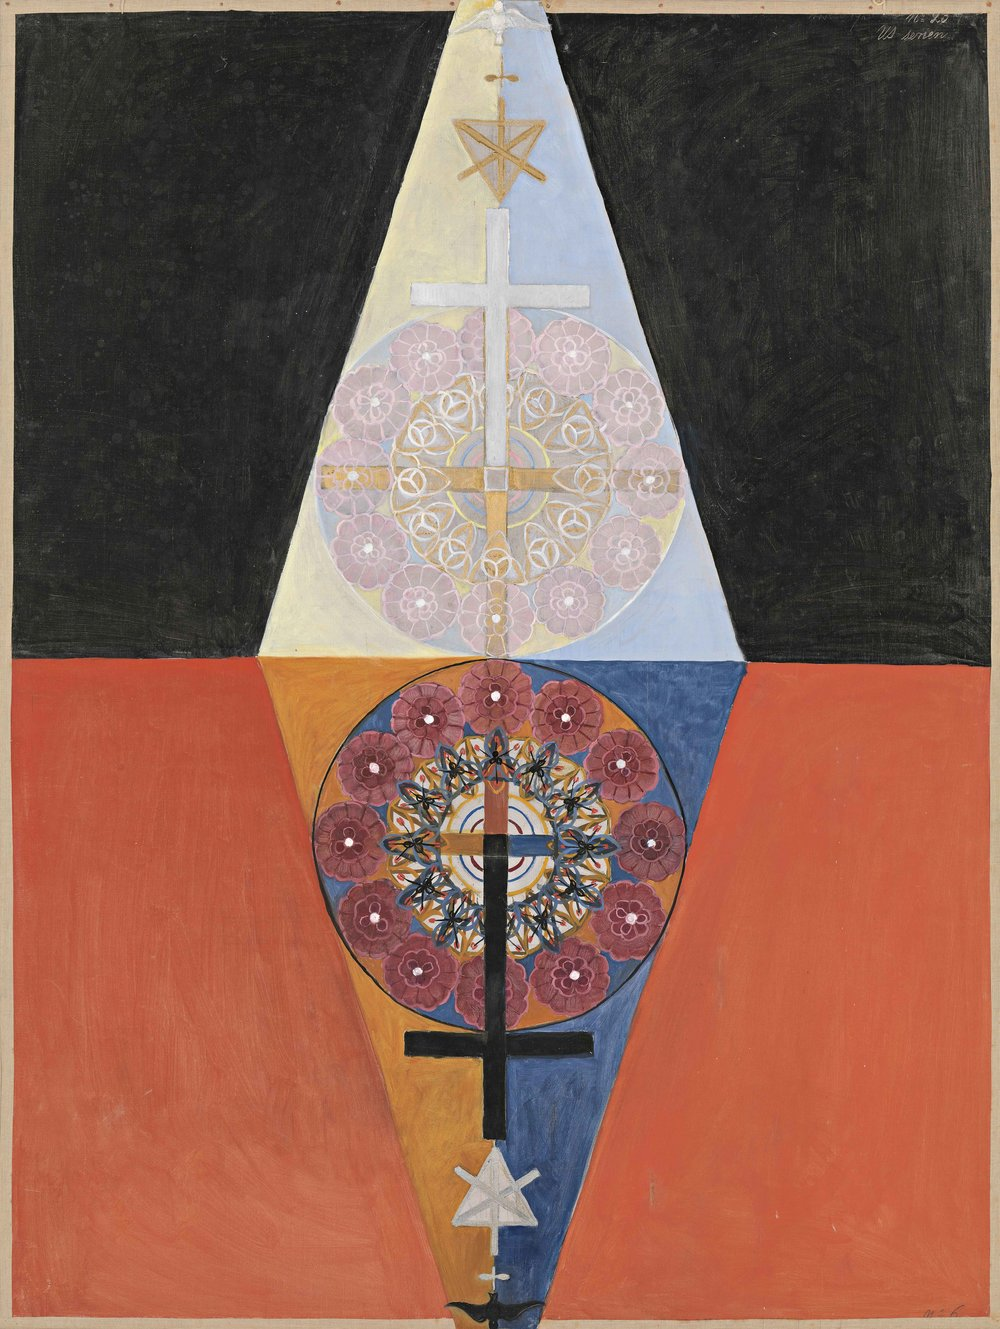 Hilma af Klint  Nr. 6,  Series US, Grupp VIII  1913 Oil on canvas 152,5 x 115,5 cm